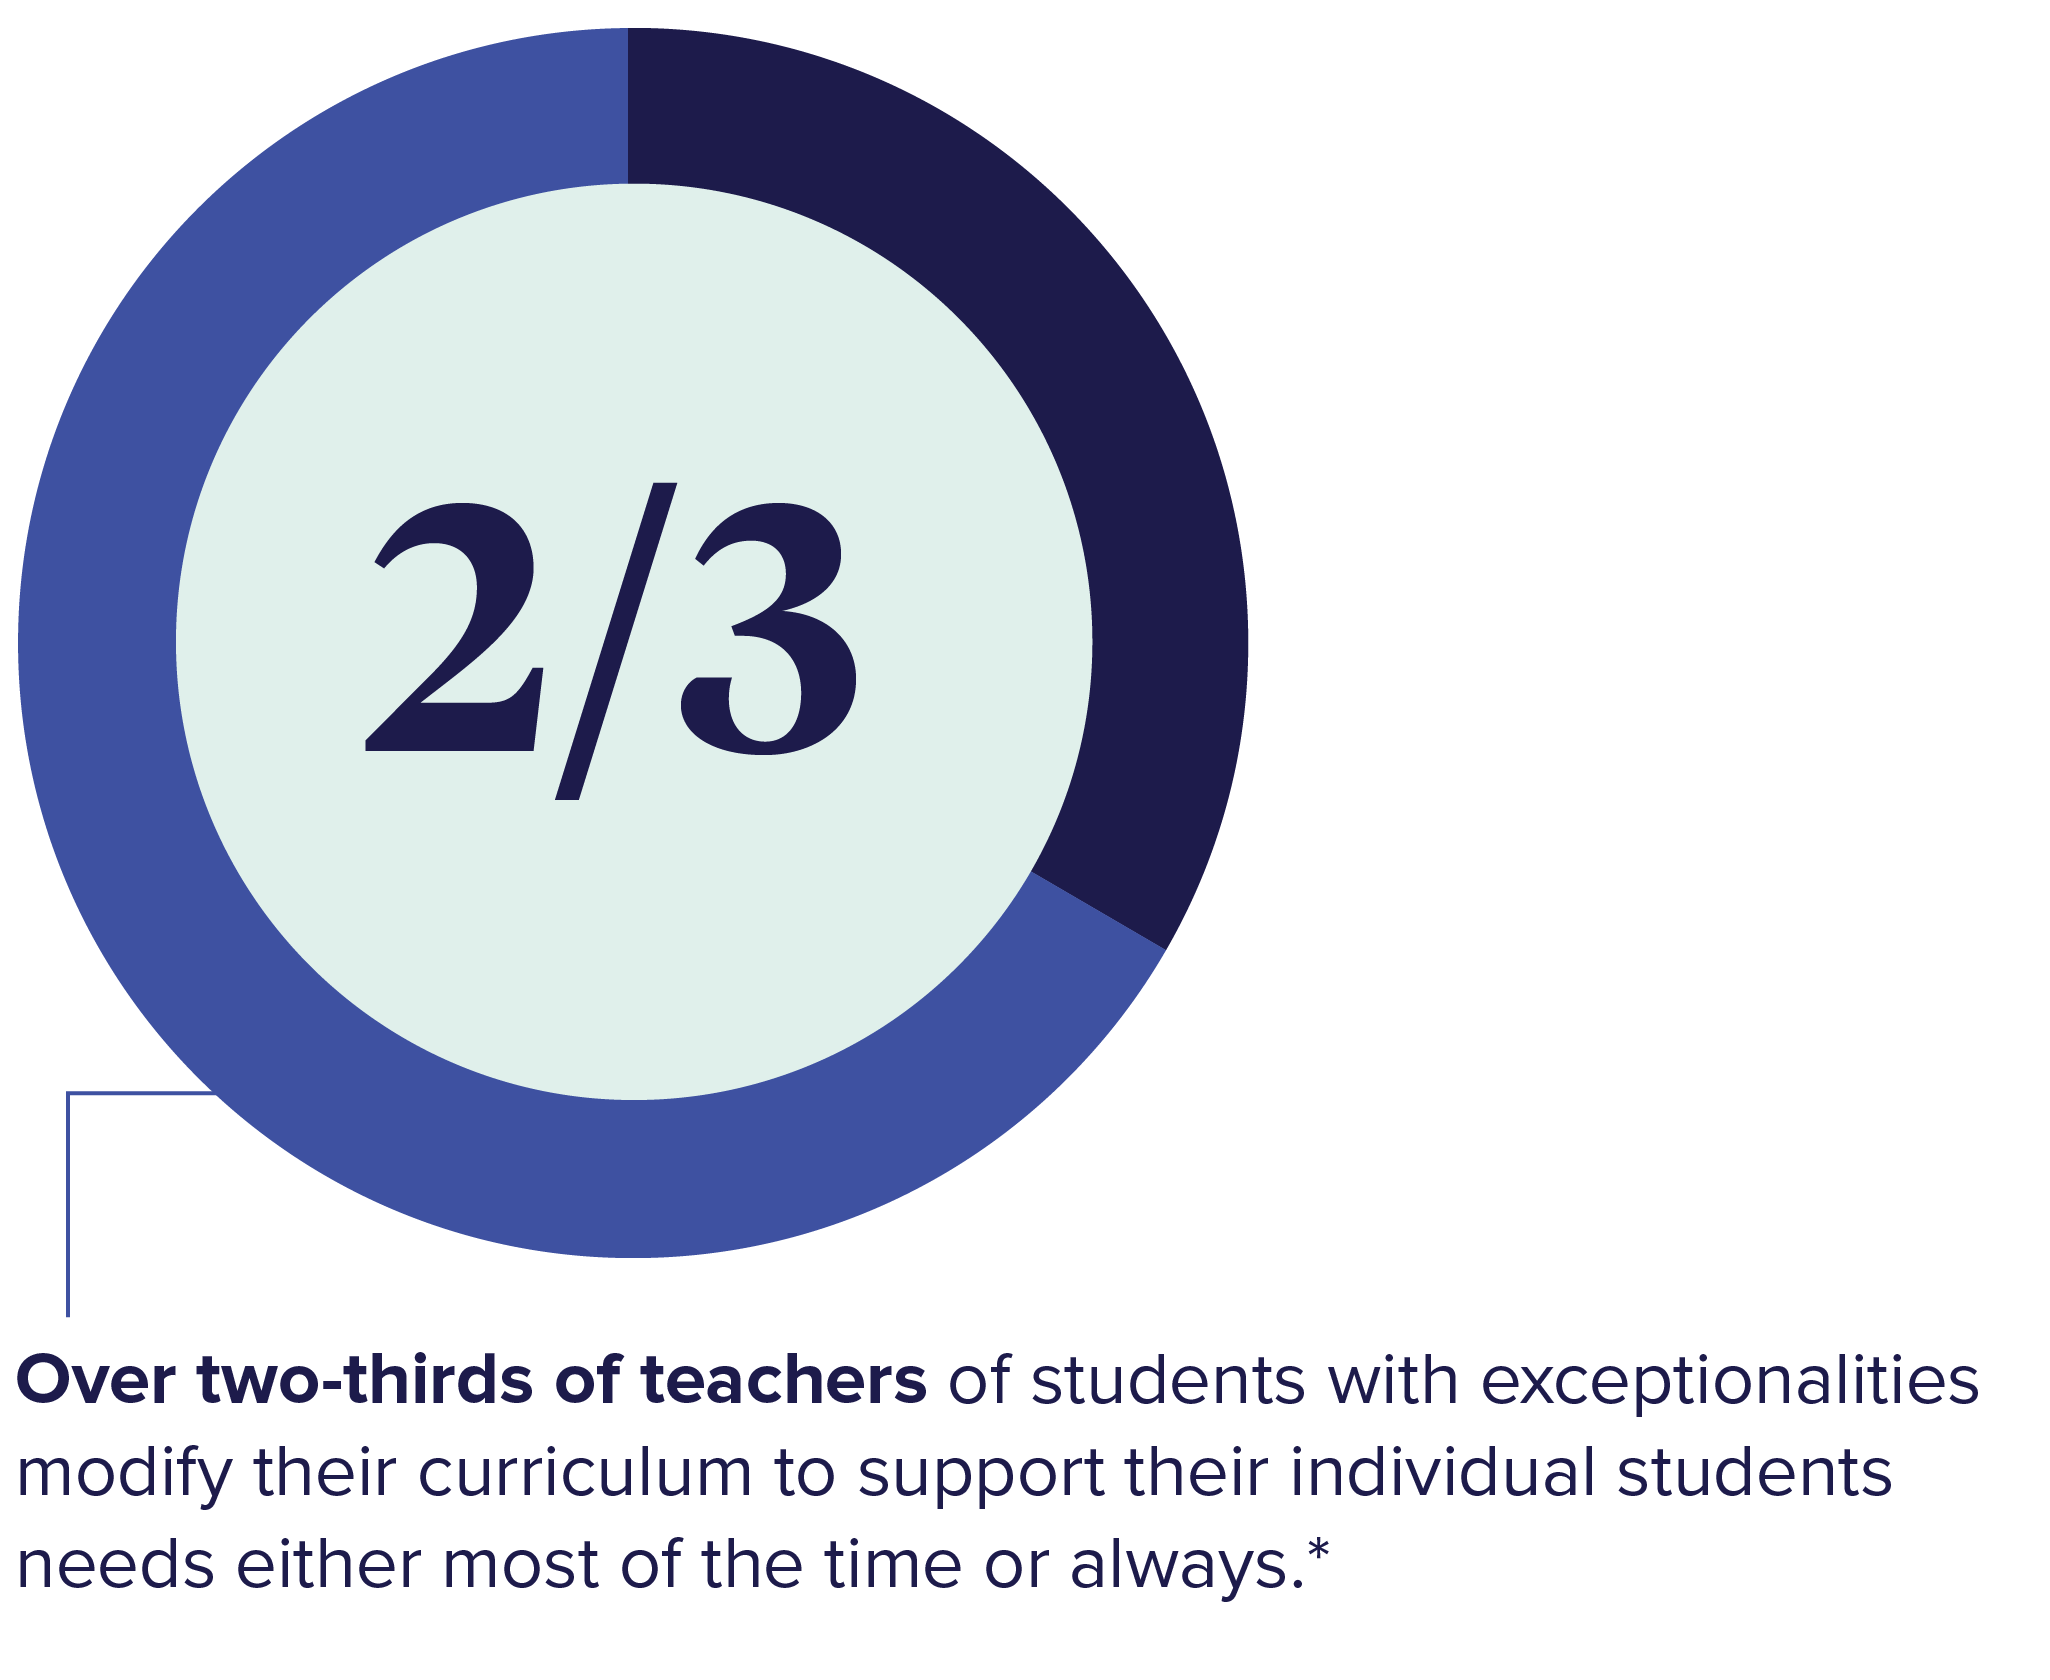 Chart showing over two-thirds of teachers of students with exceptionalities modify their curriculum to support their individual students' needs either most of the time or always.*